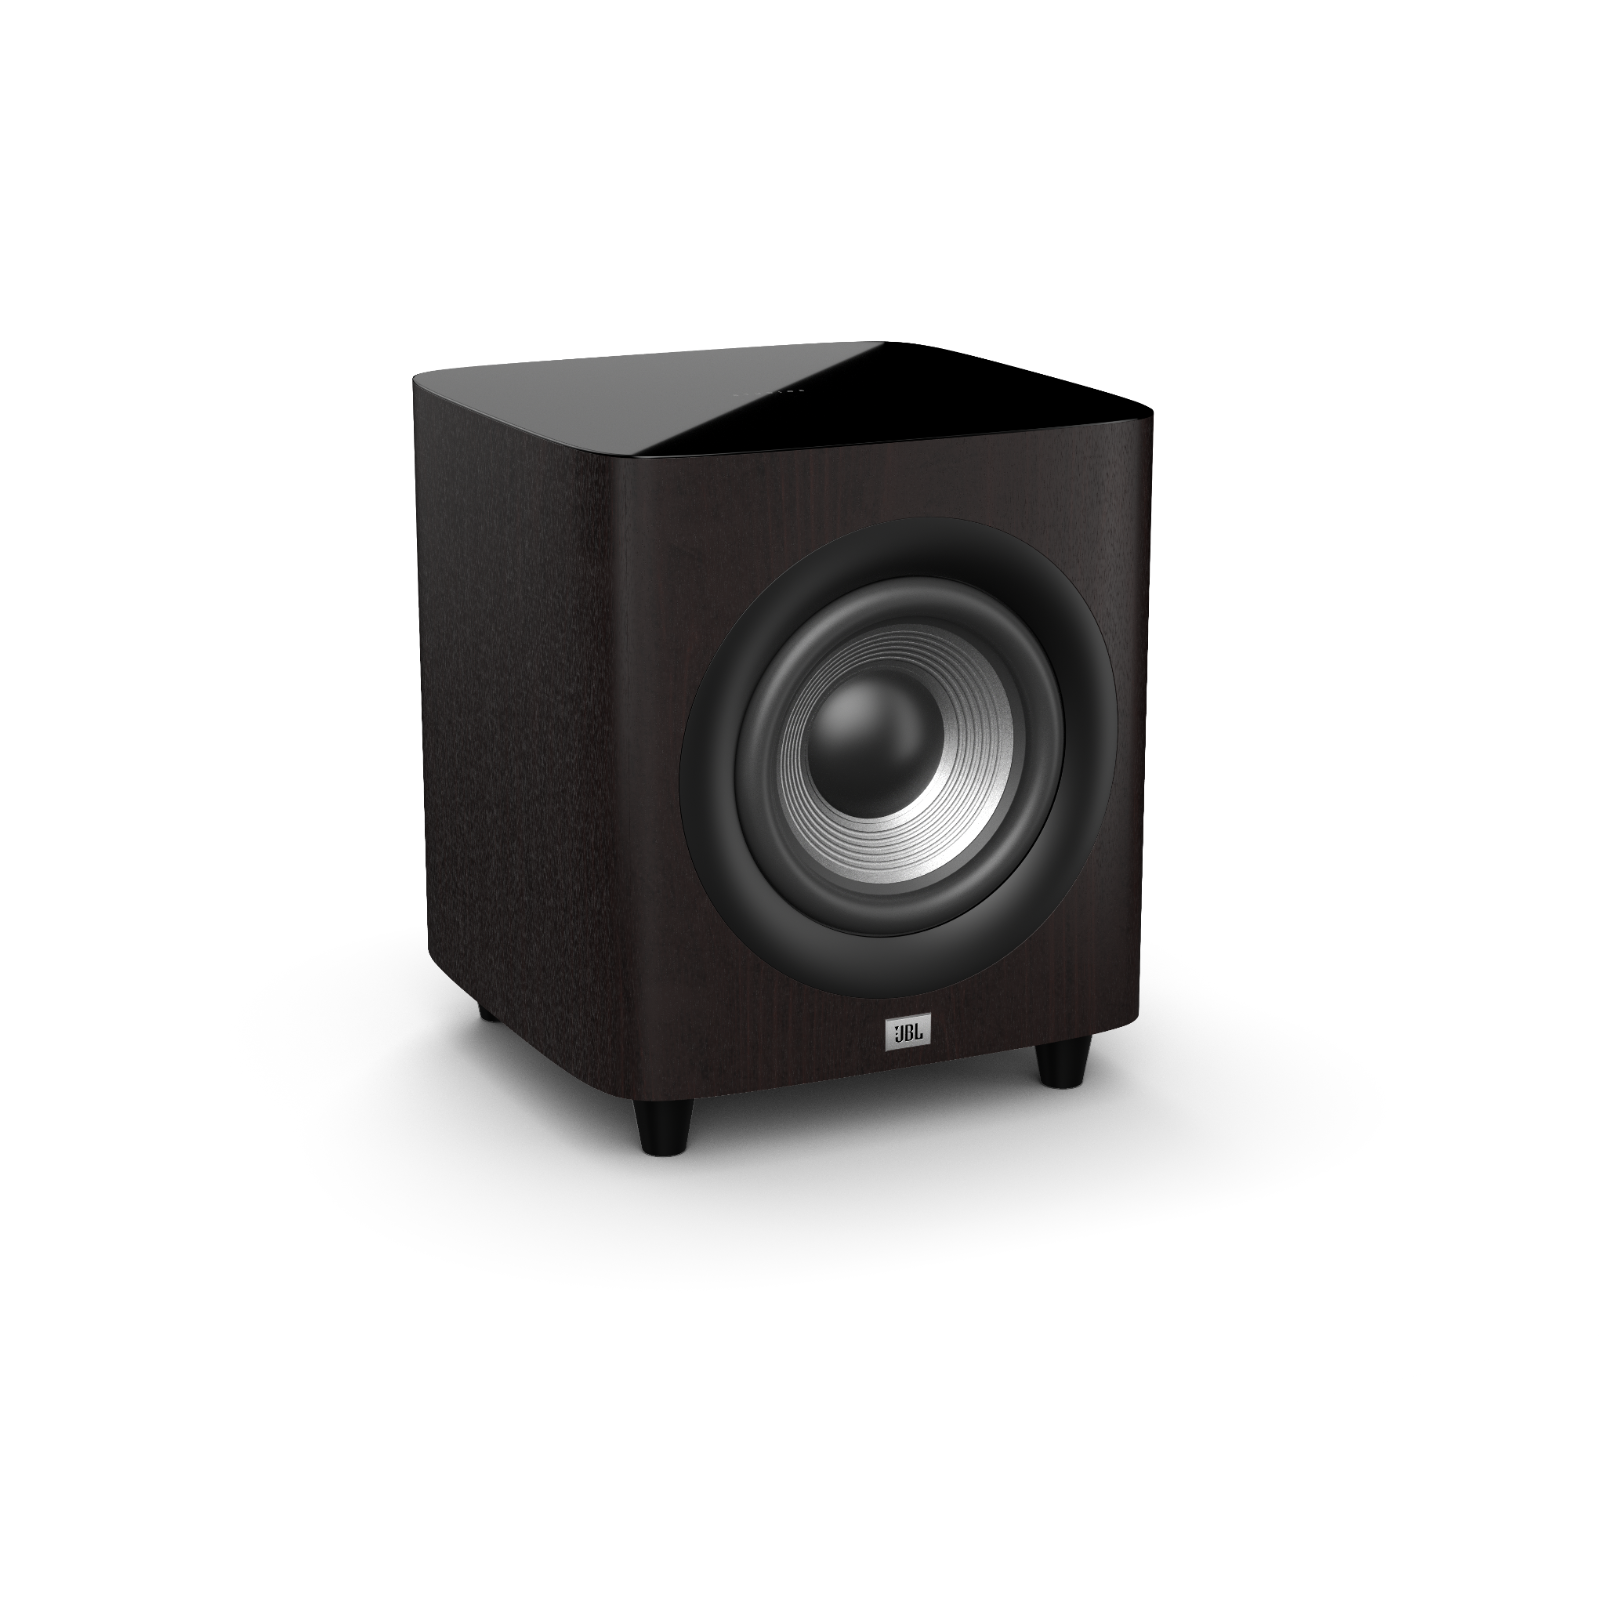 JBL STUDIO 650P - Dark Wood - Home Audio Loudspeaker System - Hero